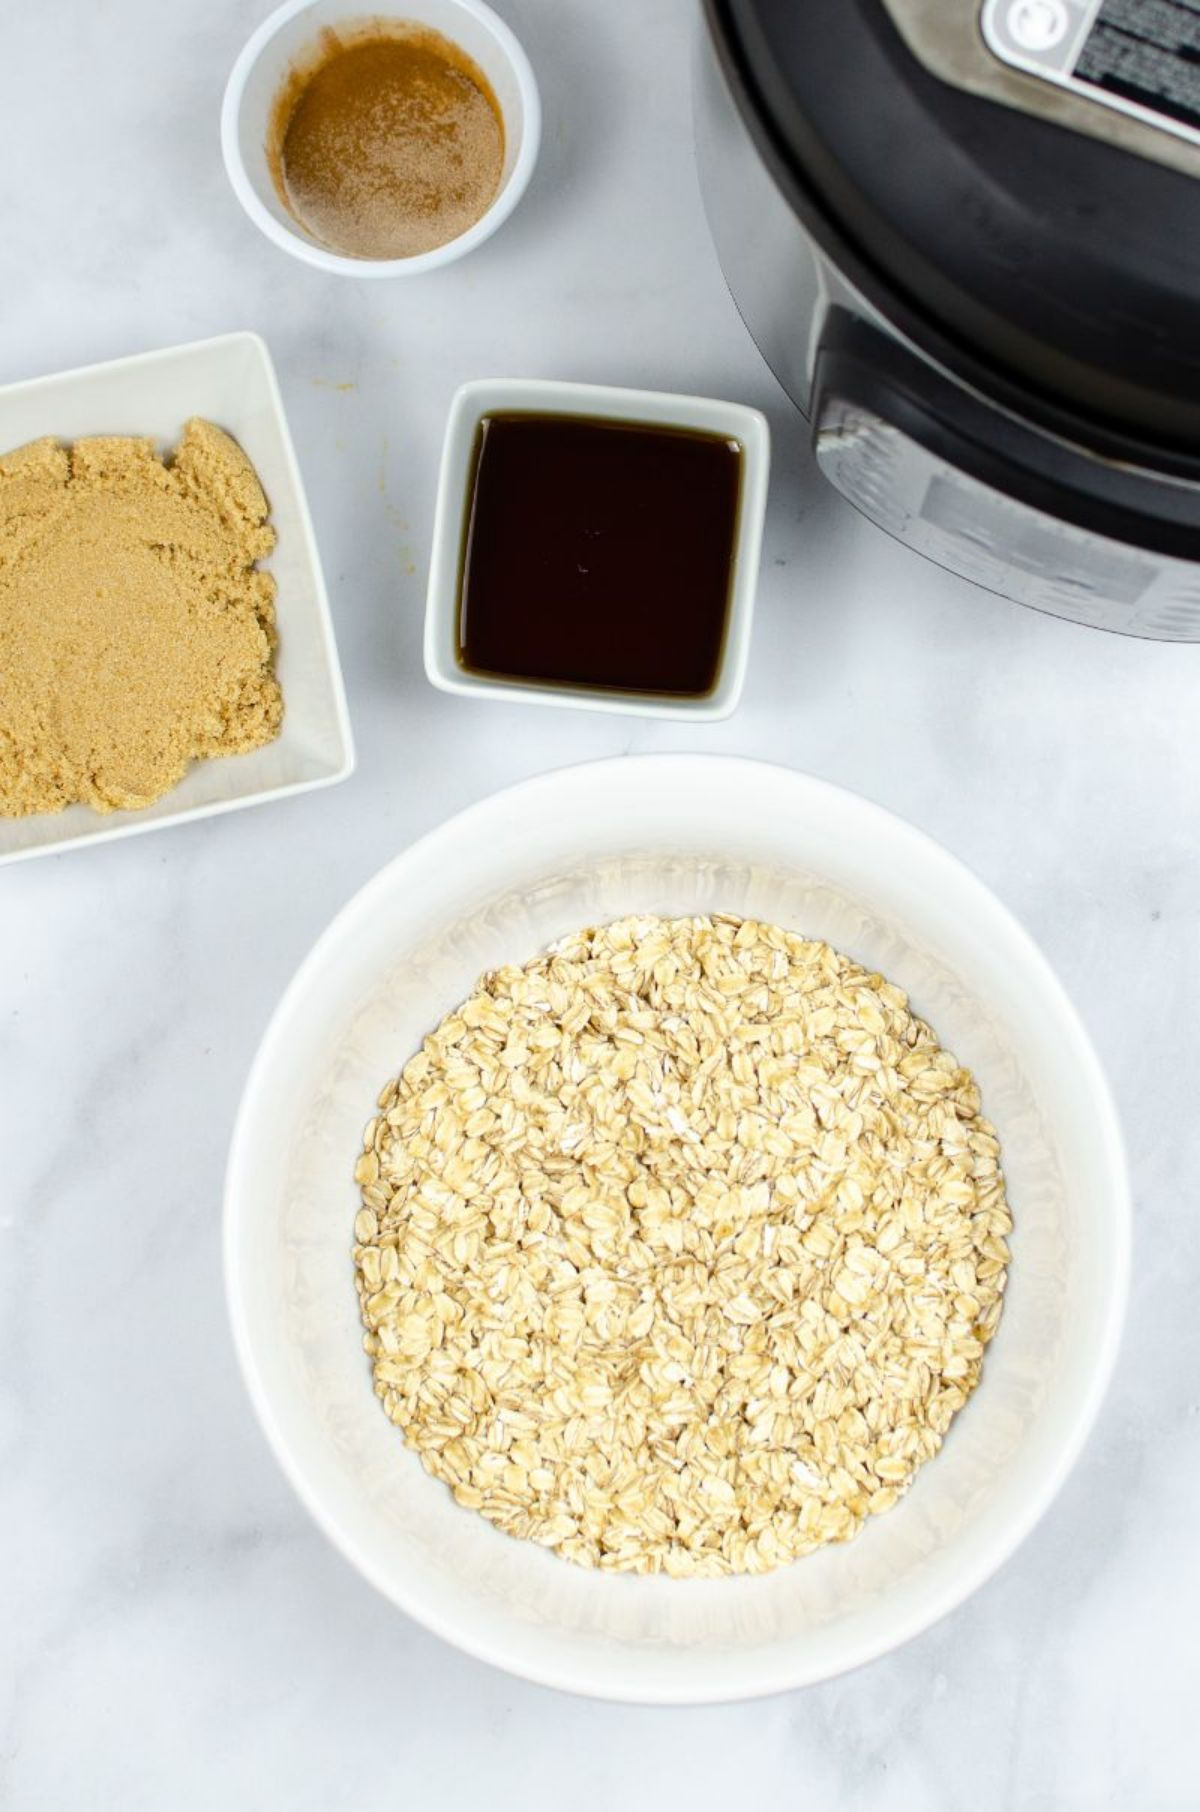 Ingredients used to make Instant Pot Oatmeal: oats, light brown sugar, maple syrup, and cinnamon.